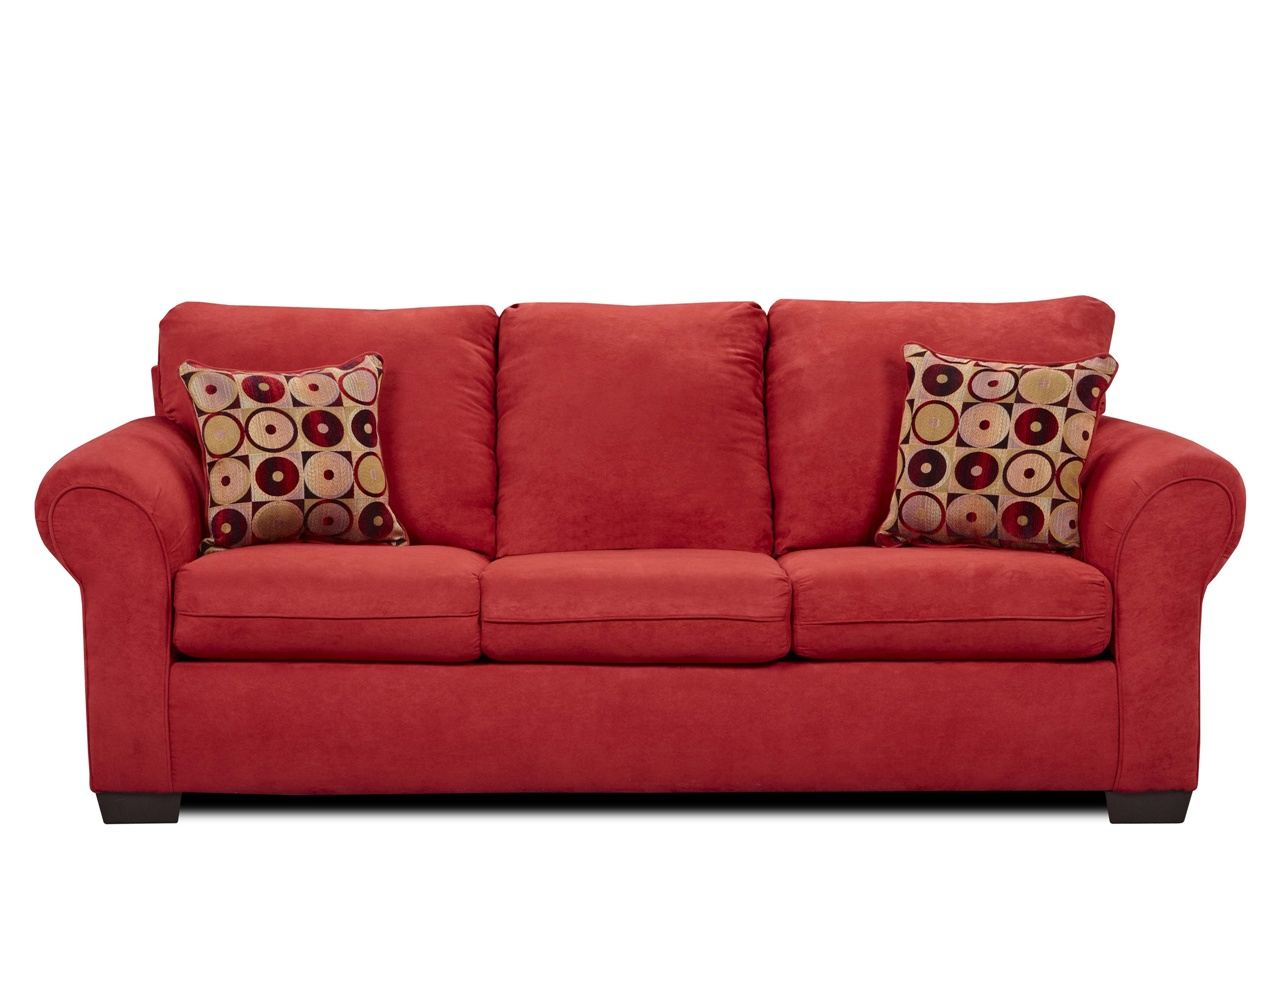 Cute cheapest couches available online couch sofa ideas interior design Couches and loveseats